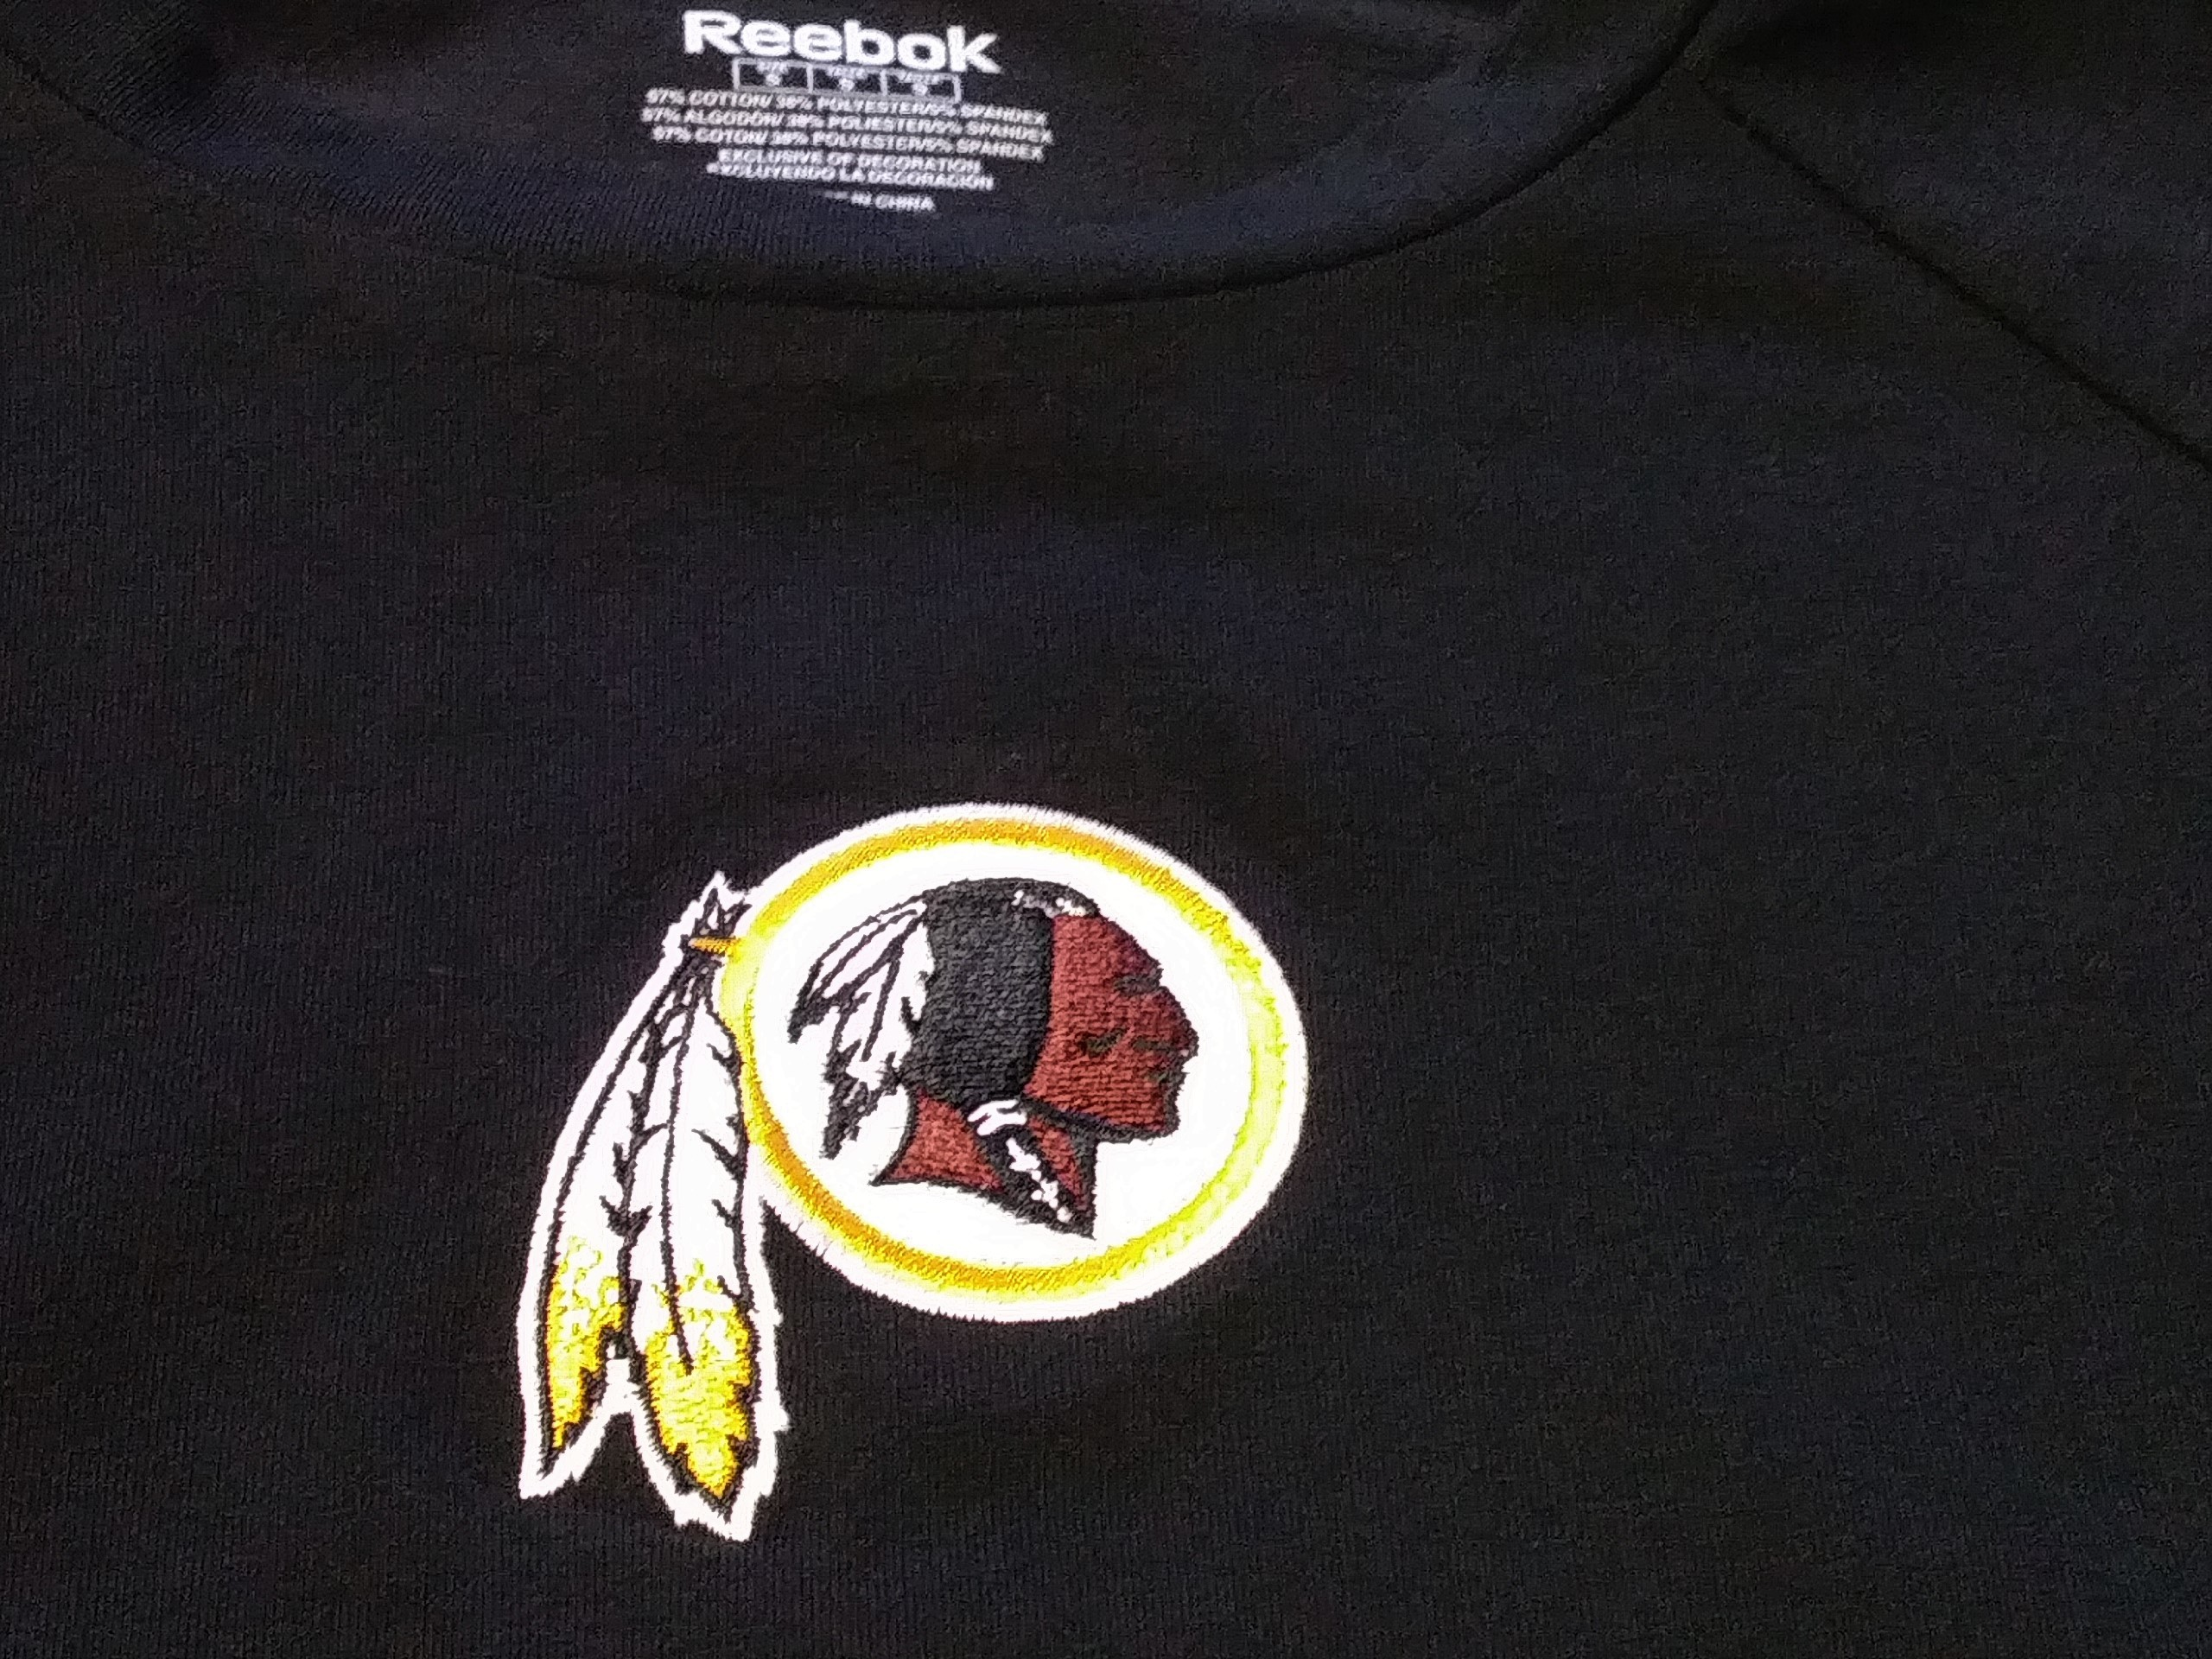 b50eb1cace4 Reebok NFL Team Apparel Women's Washington Redskins Black T-Shirt Size S  NWT | Heroes Sports Cards